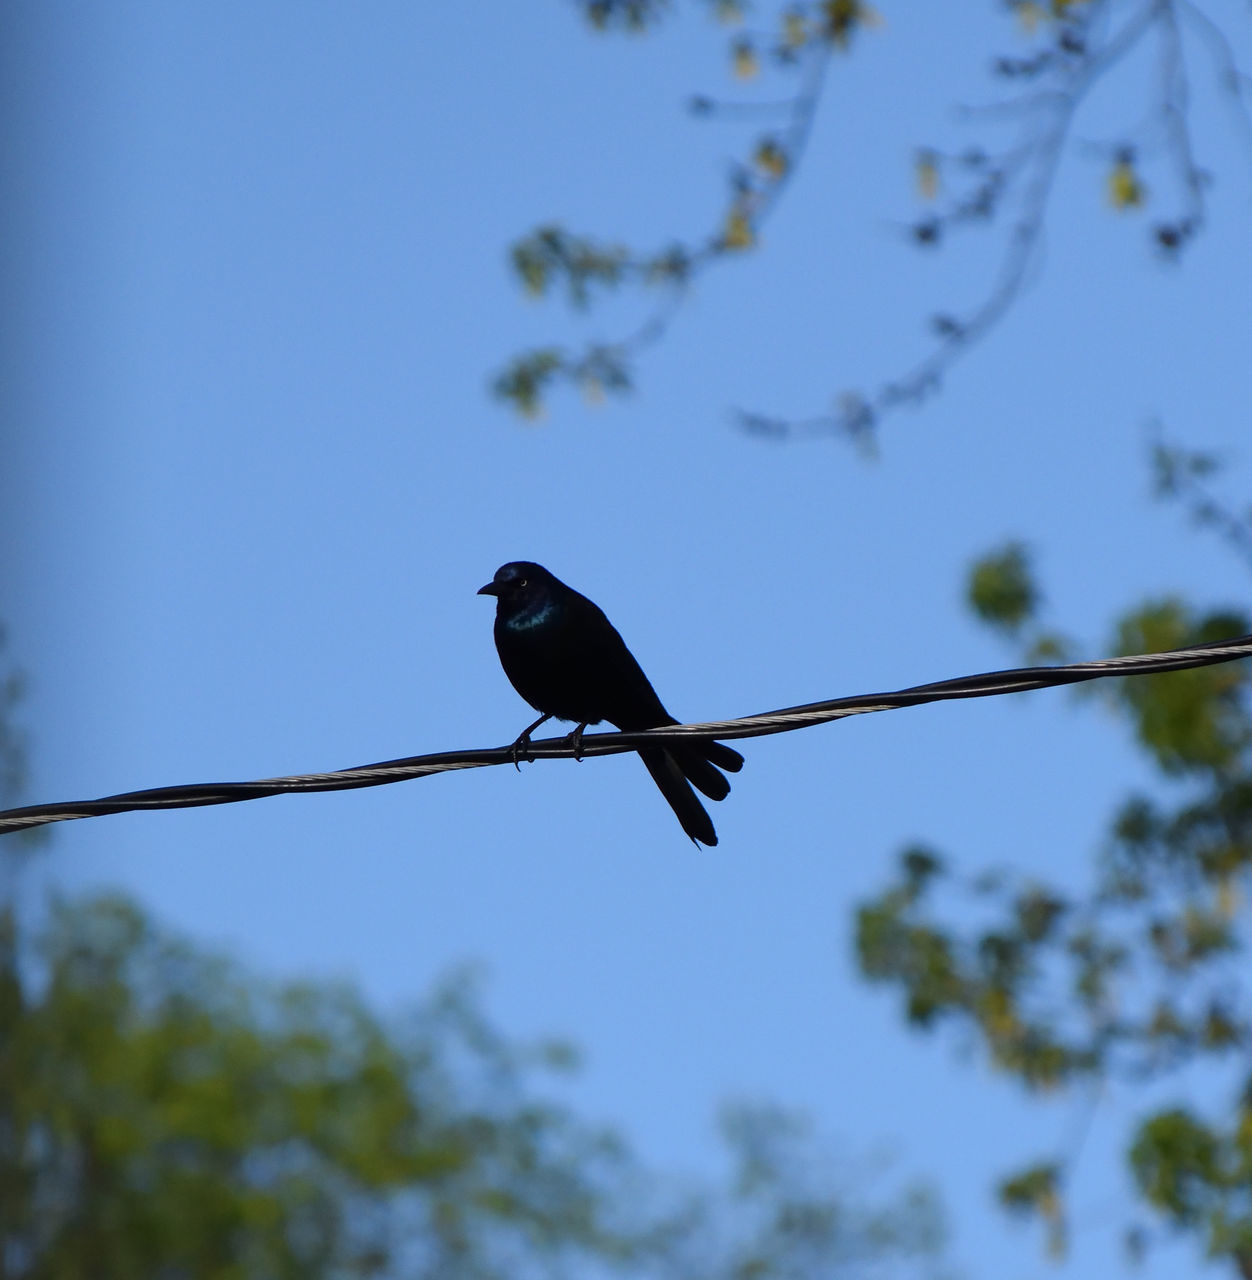 bird, one animal, animals in the wild, animal themes, low angle view, tree, focus on foreground, animal wildlife, perching, nature, day, no people, clear sky, outdoors, branch, beauty in nature, sky, close-up